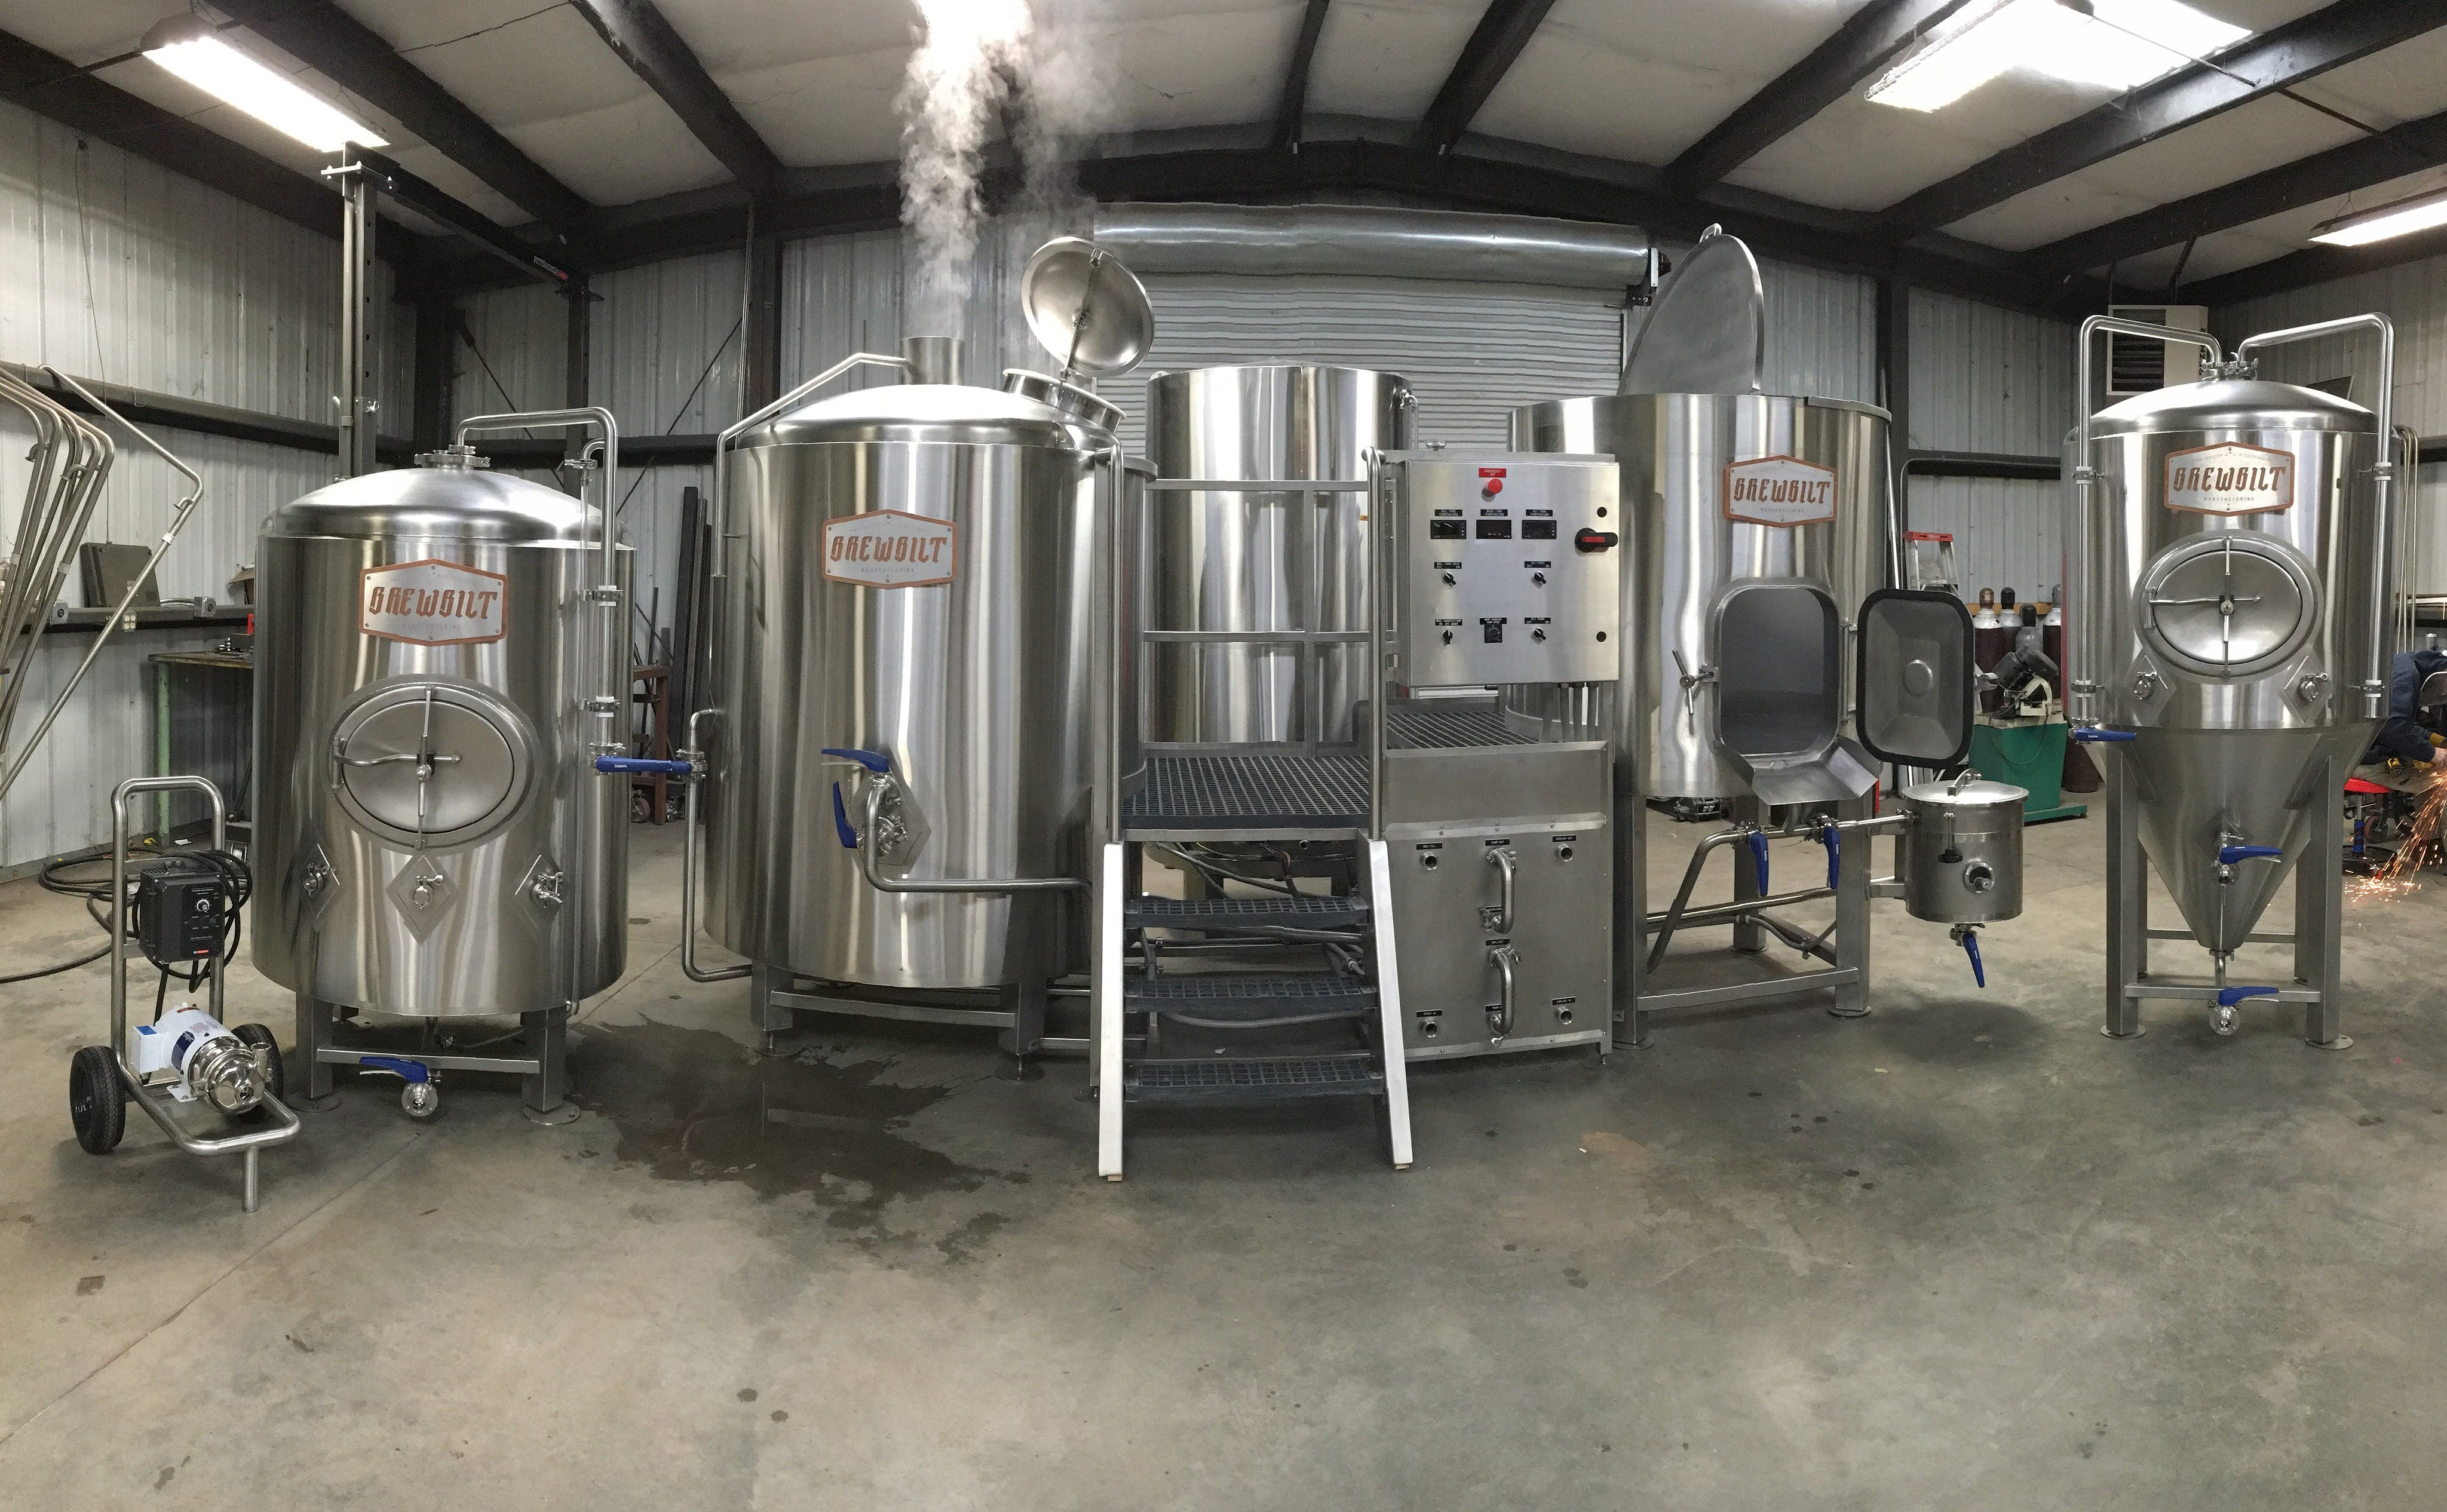 7 BBL Brewhouse Brewhouse sold by BrewBilt Manufacturing LLC